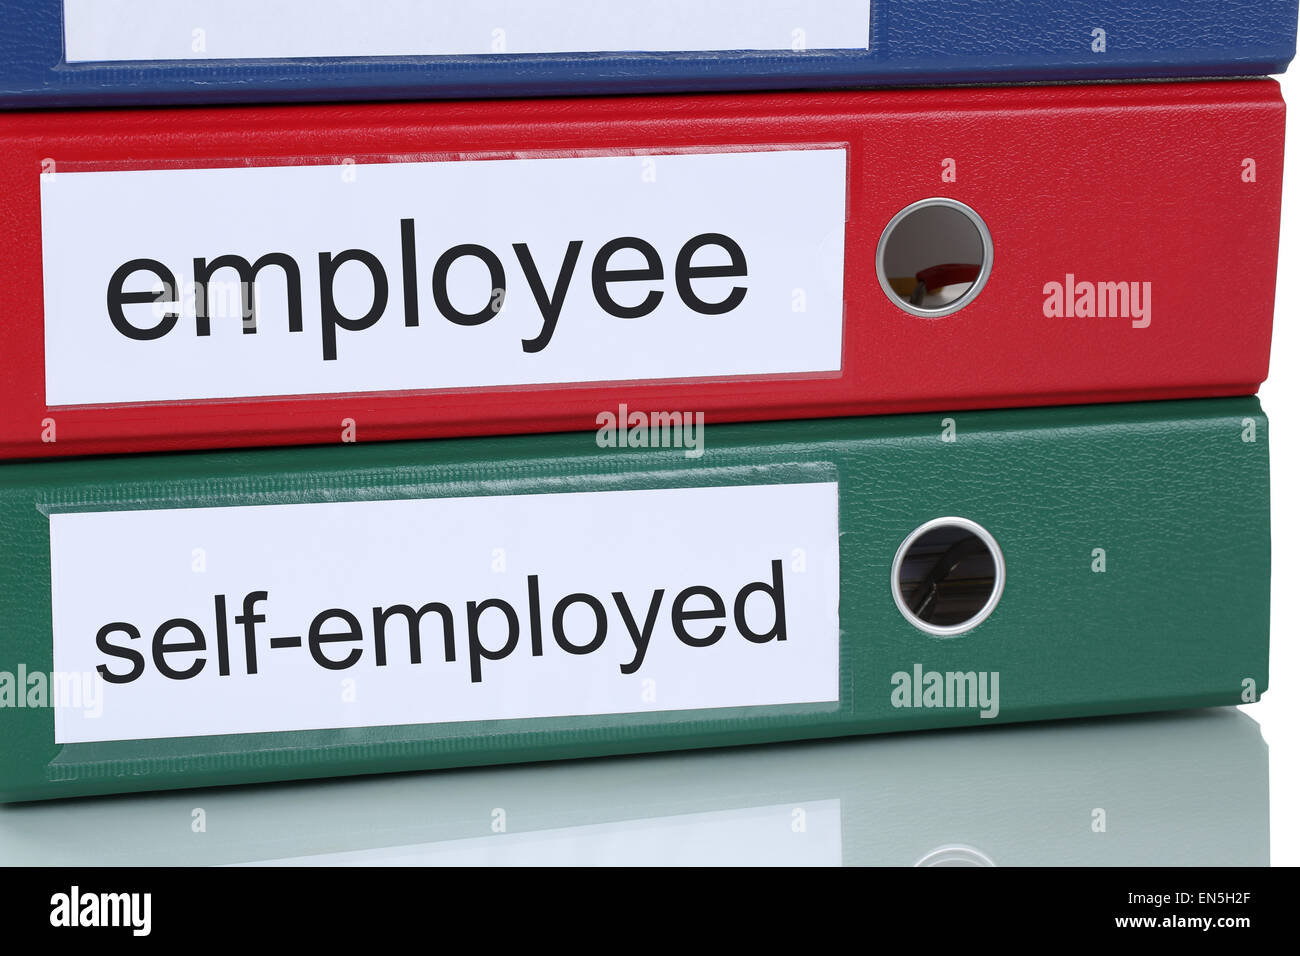 Employee or self-employed occupation career business concept in office - Stock Image